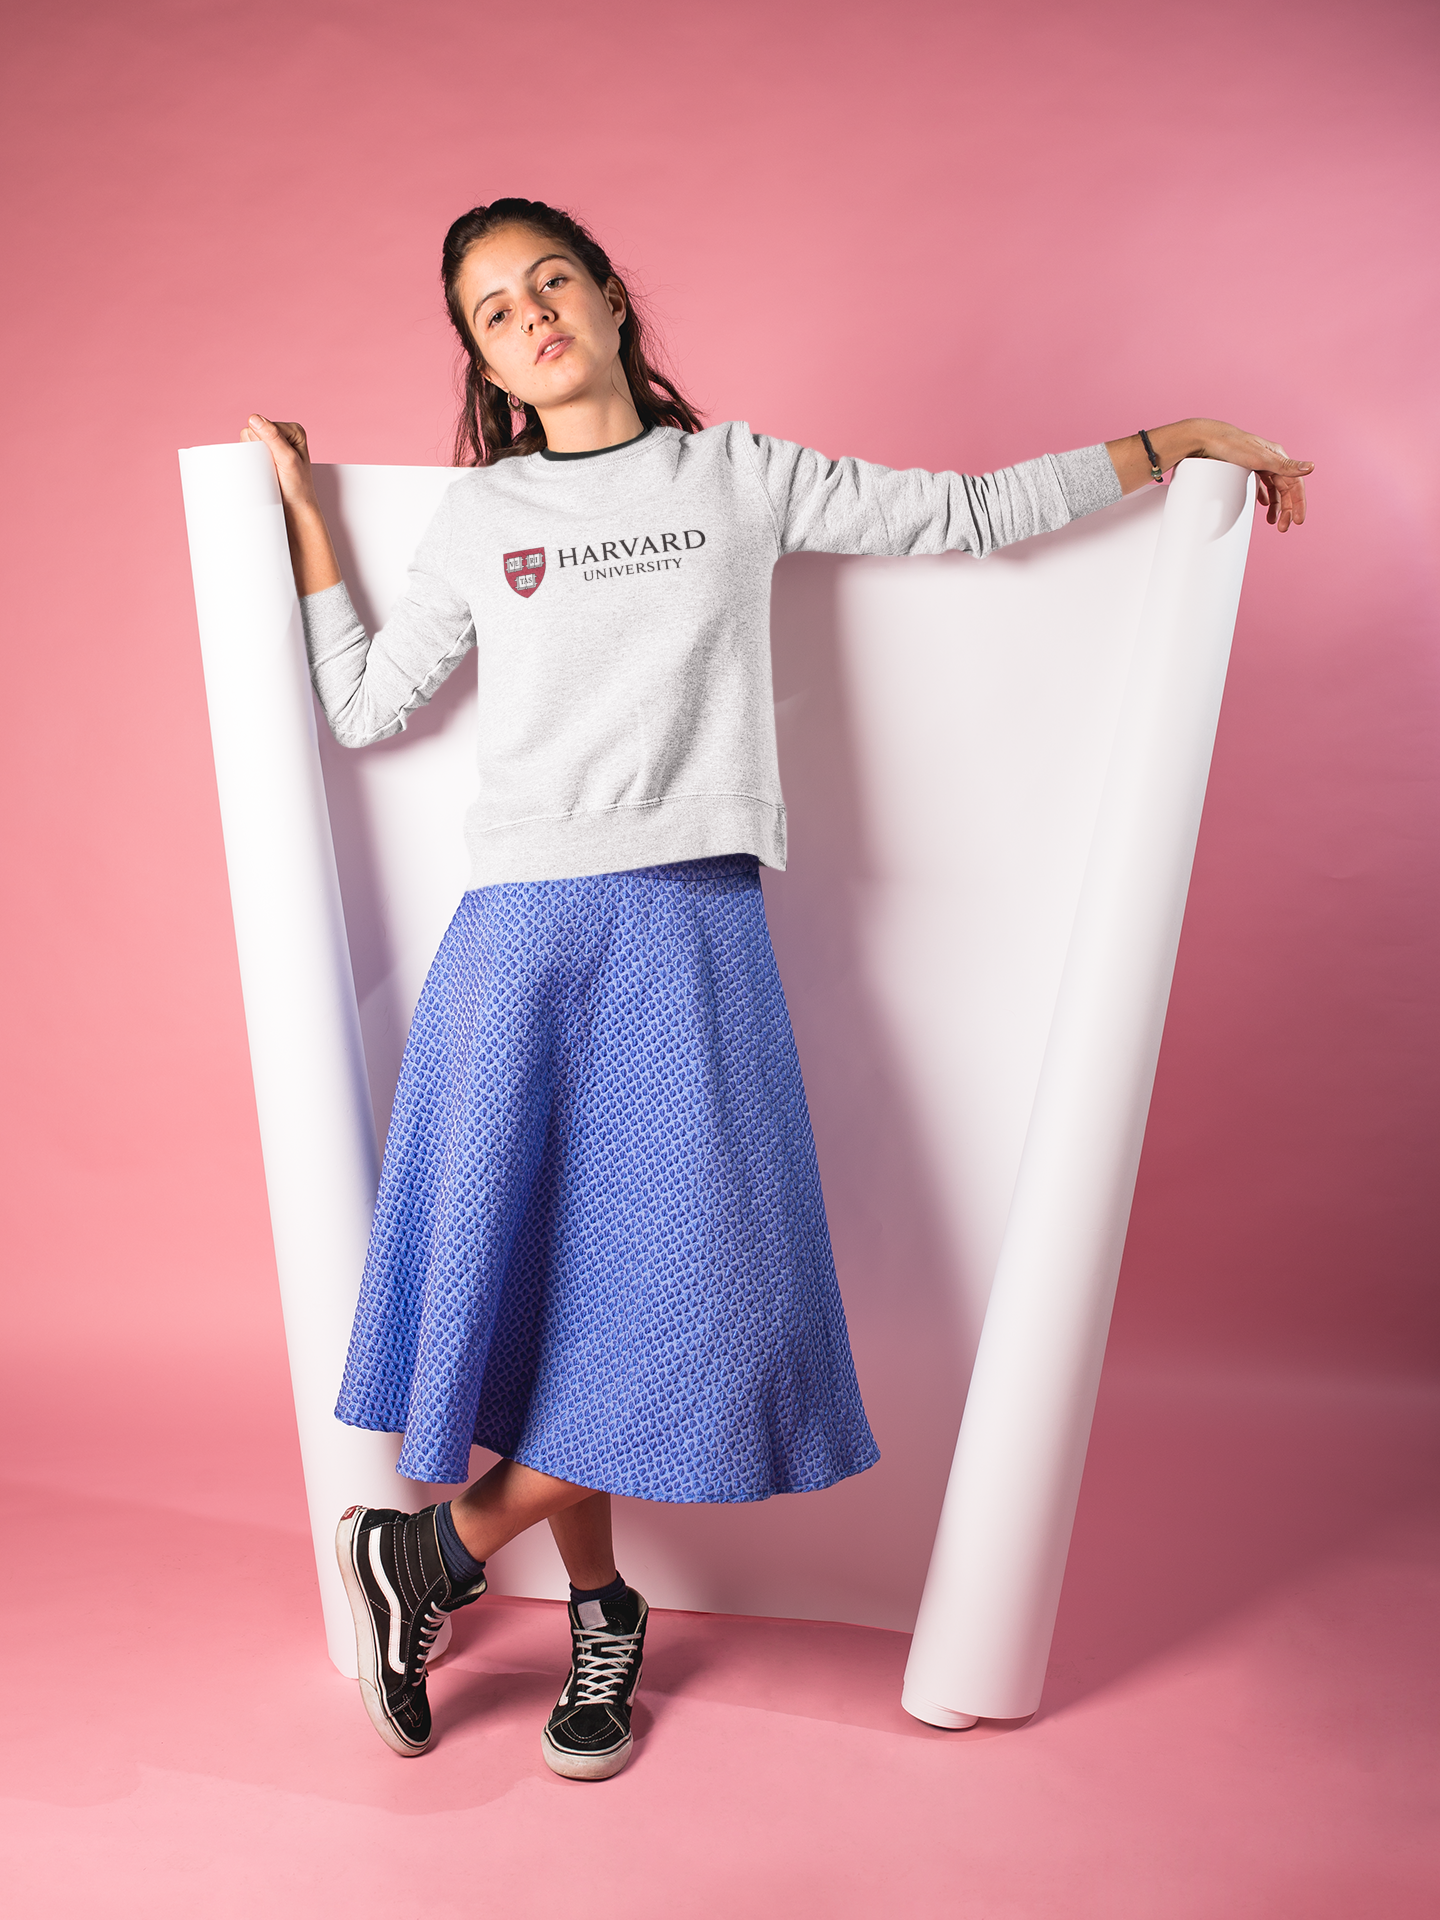 Left-Eye-Creations-girl-wearing-a-Screen-Printed-crewneck-sweatshirt-mockup-lying-over-a-cyclorama-in-a-pink-room-a18506.png